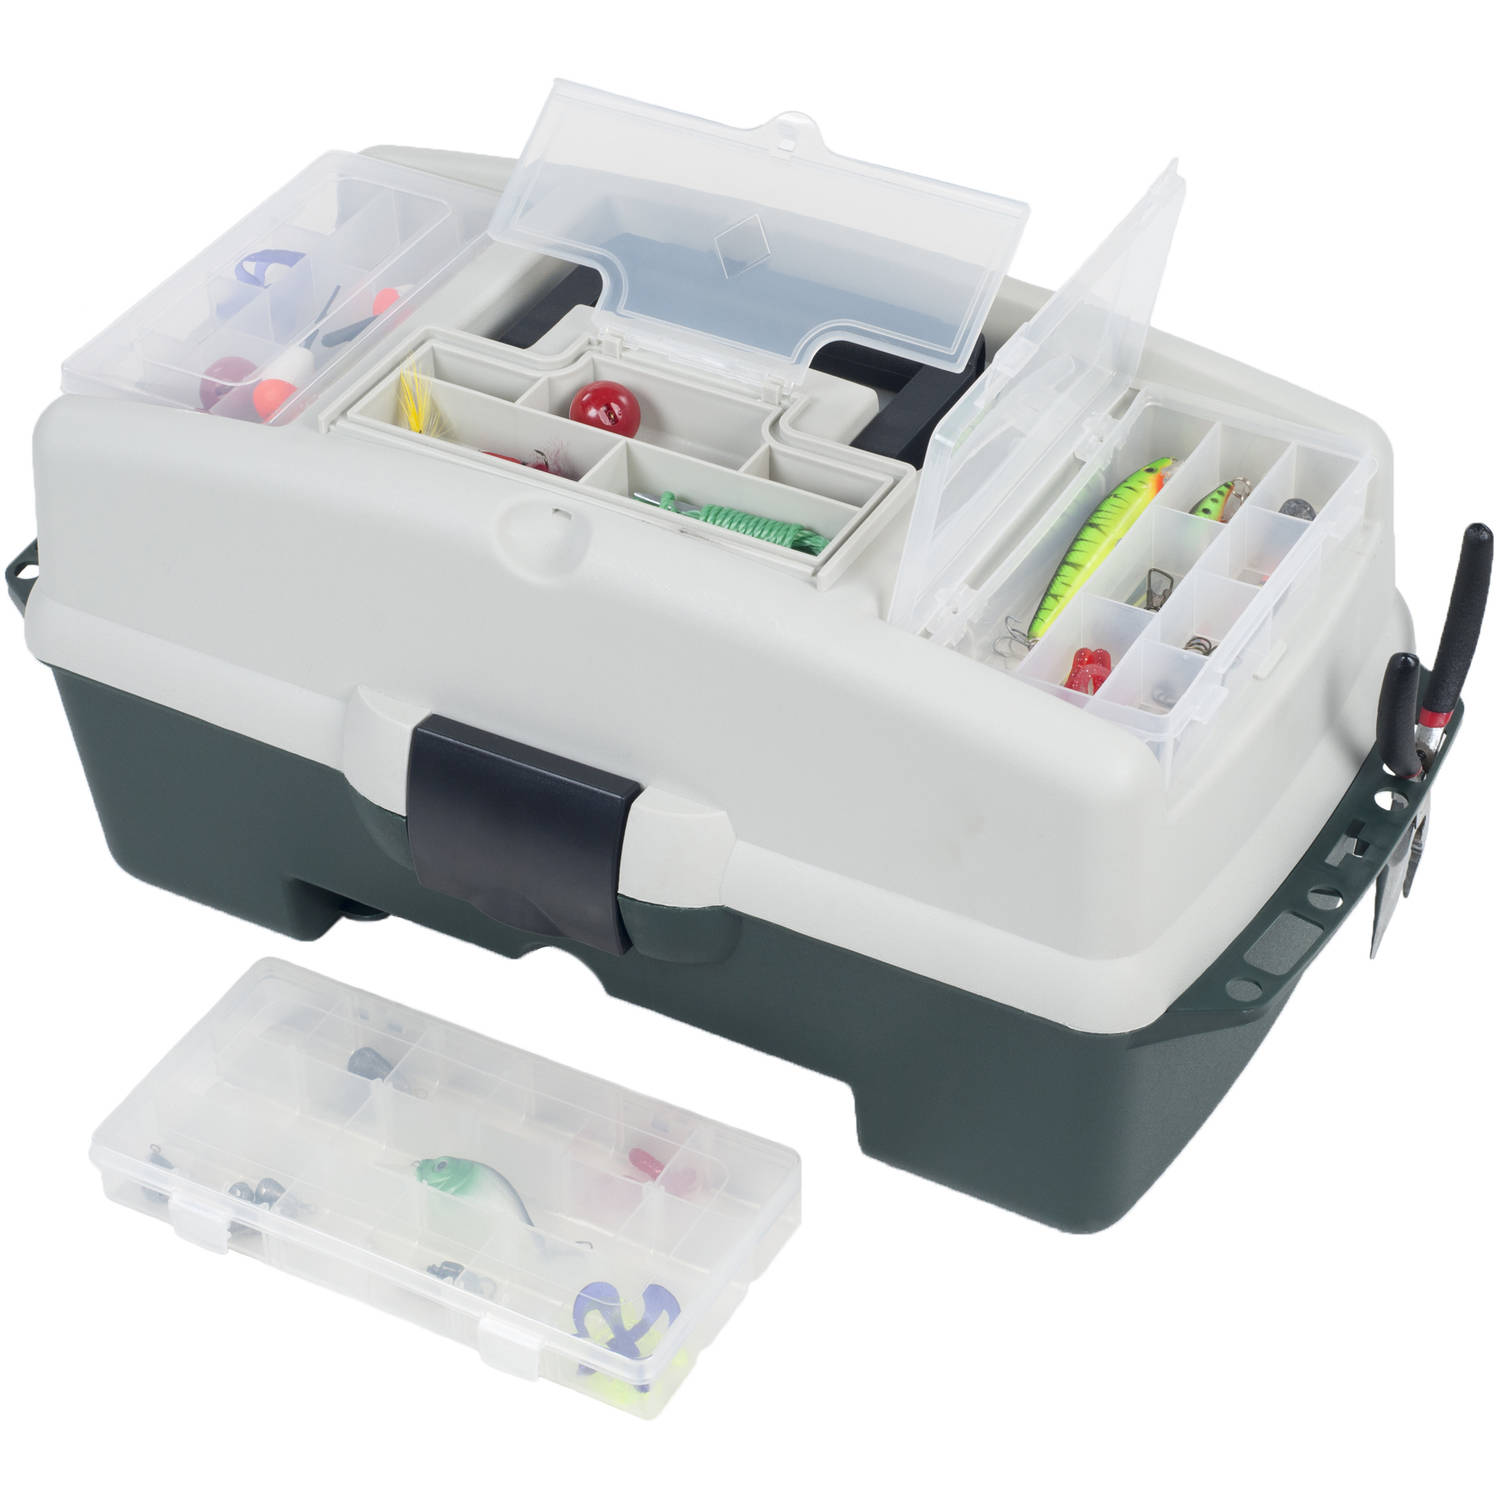 Wakeman Fishing 2-Tray Tackle Box with 3 Removable Organizers, 18""